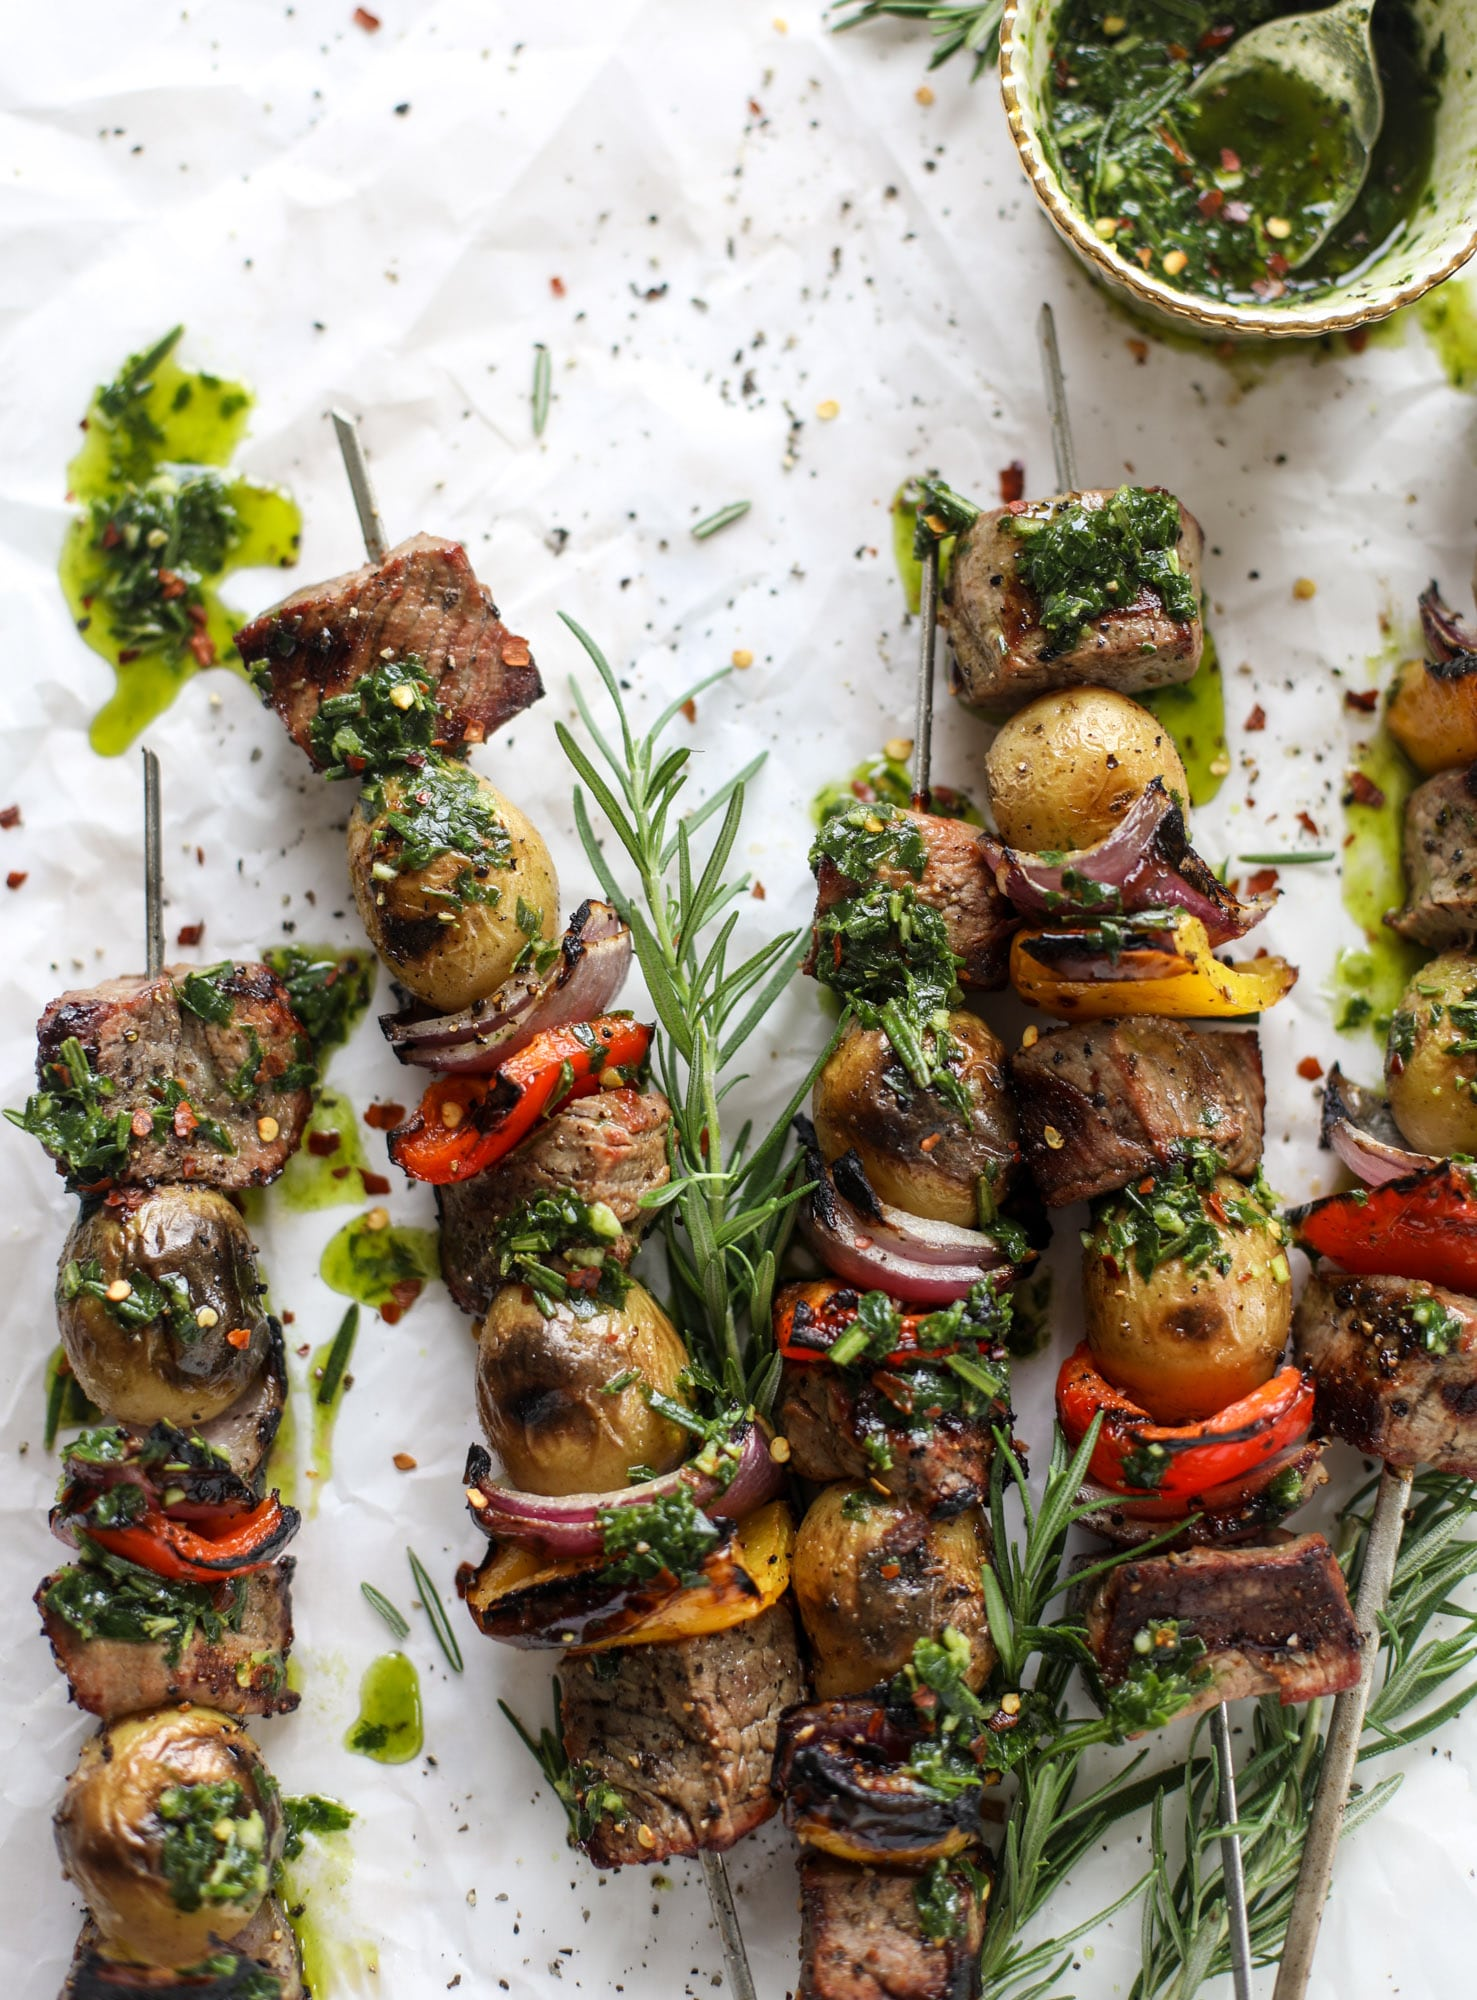 These steak and potato skewers are a complete meal in one! Serve with chimichurri for the ultimate flavor explosion. These are delicious!